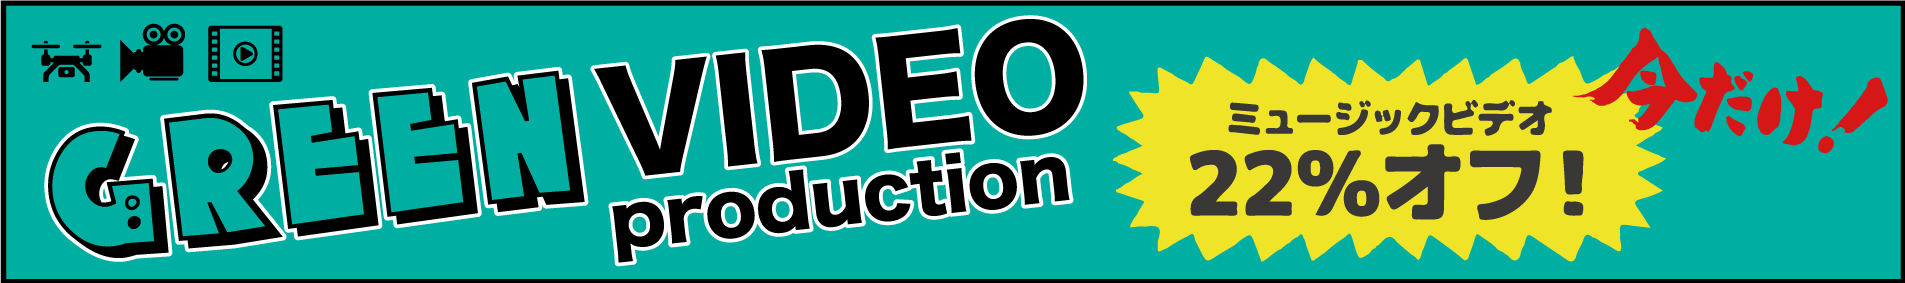 GREEN VIDEO production